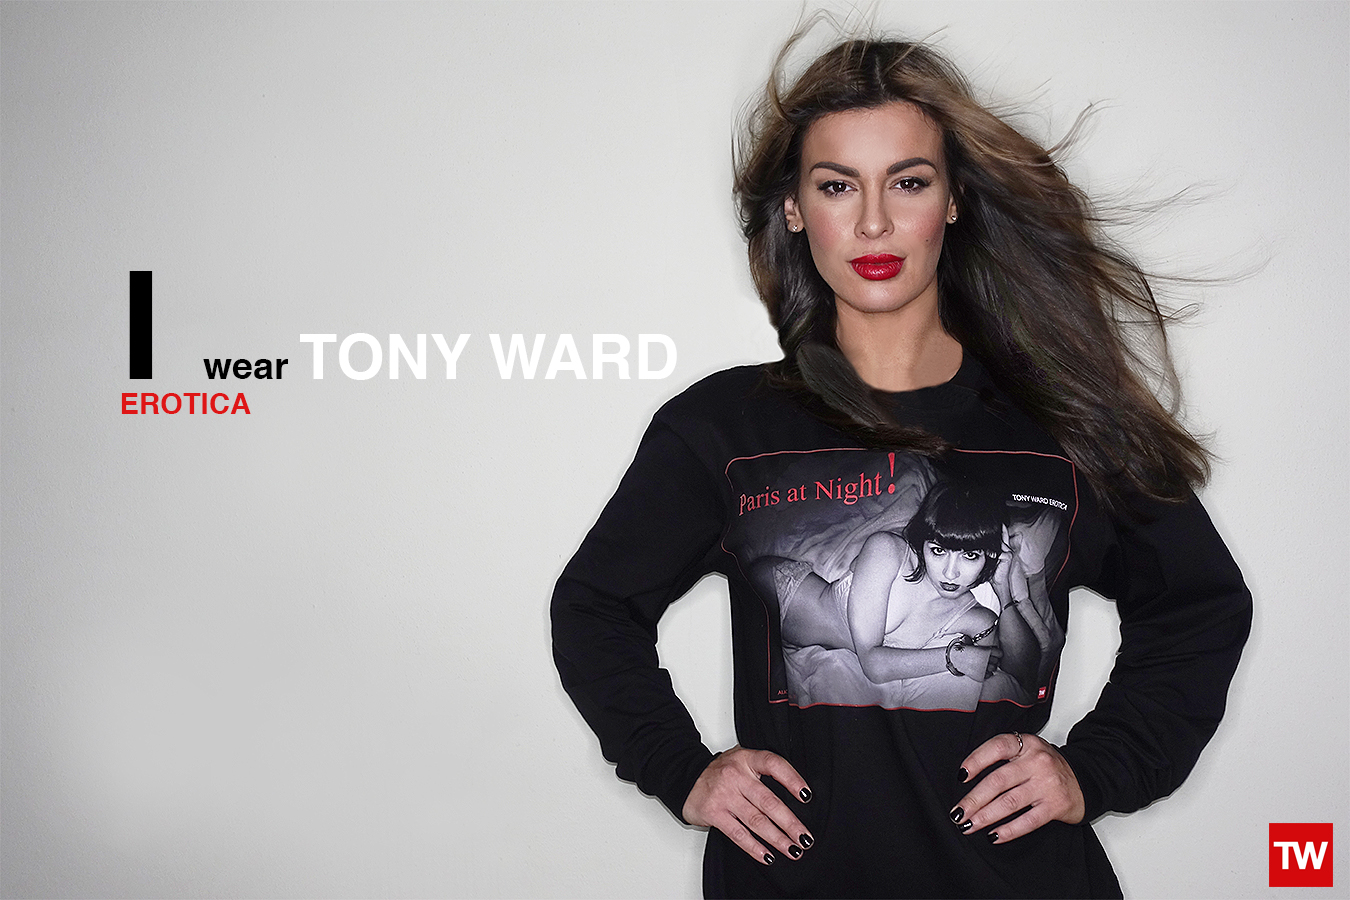 Tony_Ward_Erotica_I_Wear_Brenda_Hamburg_Germany_hot_sexy_mom_black_longsleeve_t-shirt